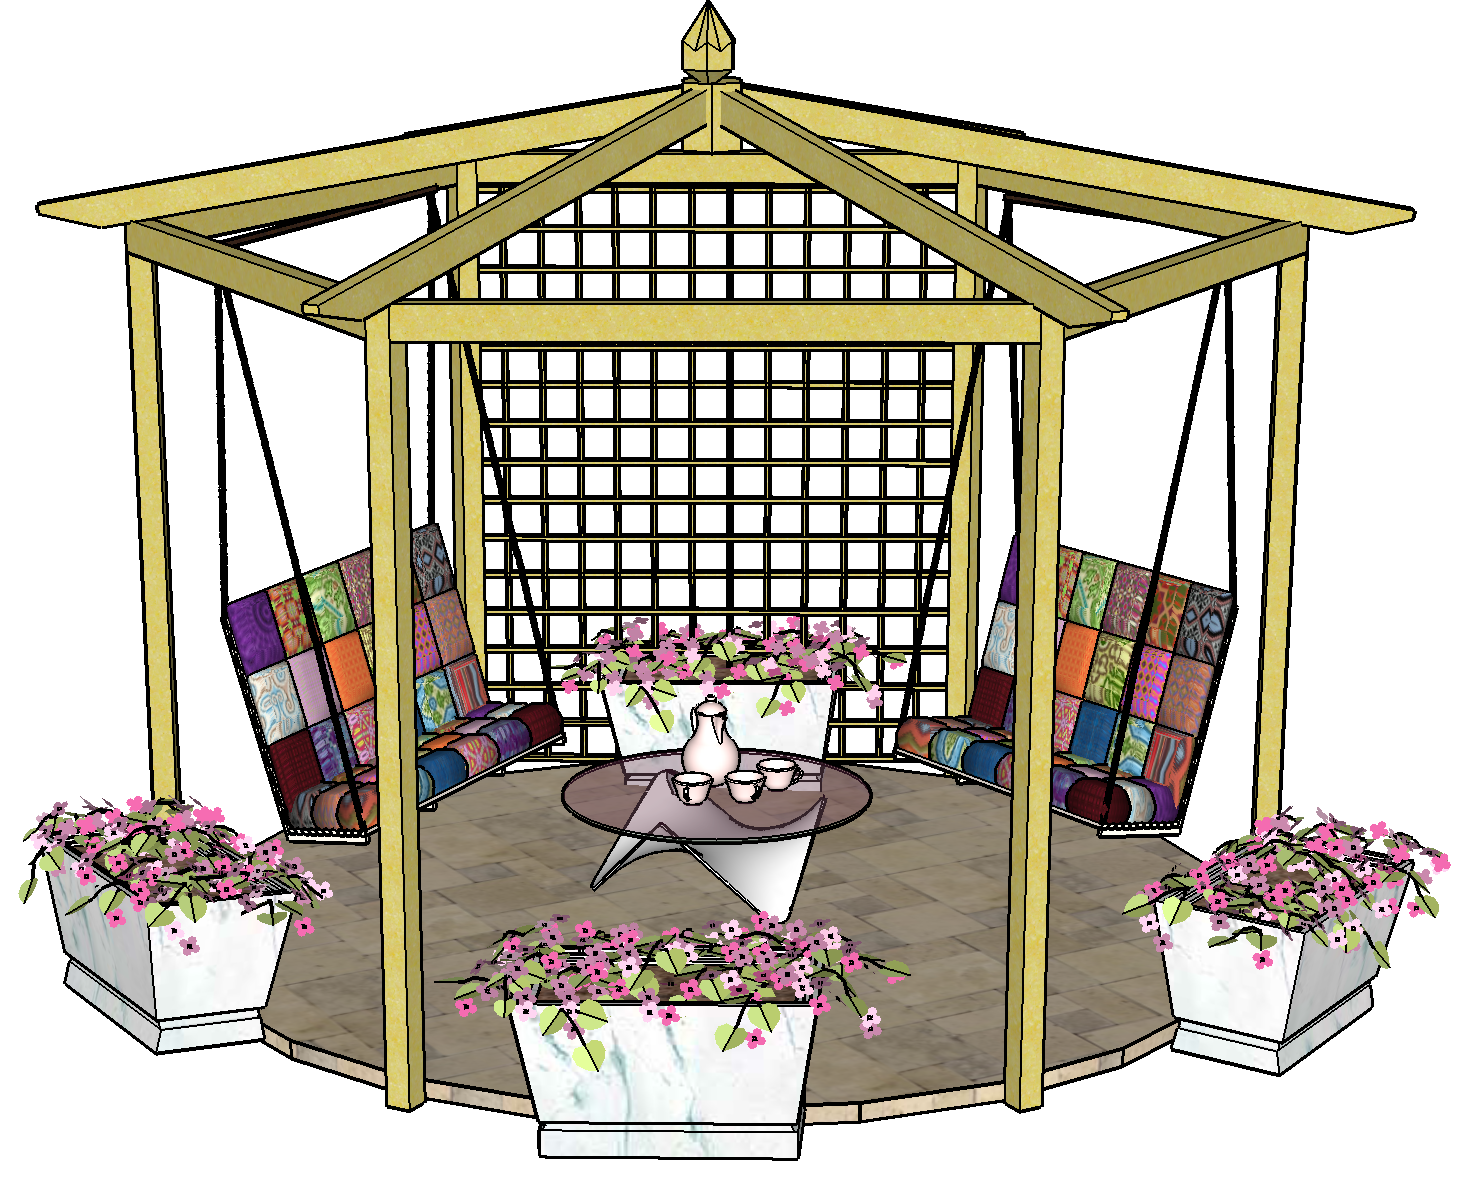 Copyright image: A beautiful pitched roof hexagonal pergola with swing bench seats and trellis panel.